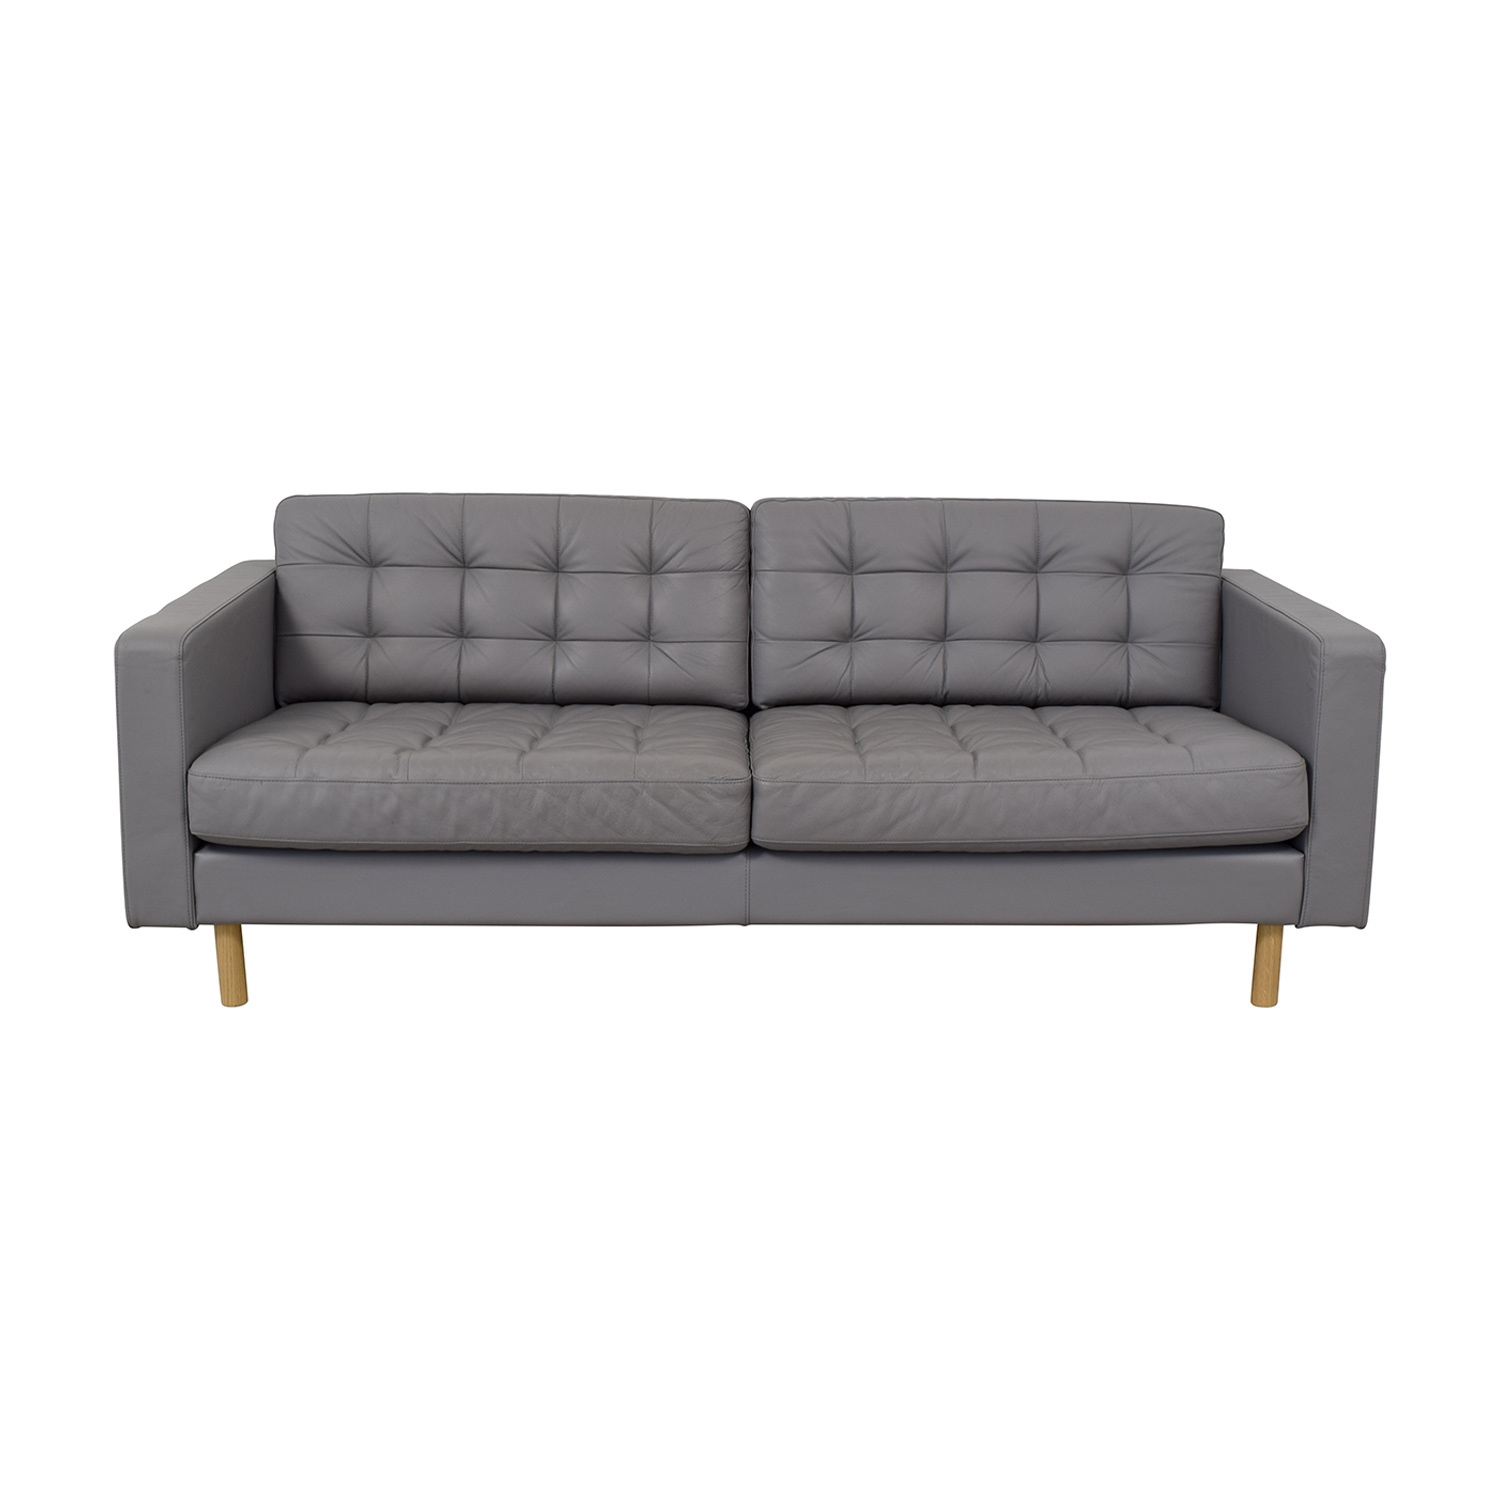 Couches In Ikea 56 Off Ikea Ikea Grey Leather Landskrona Sofa Sofas